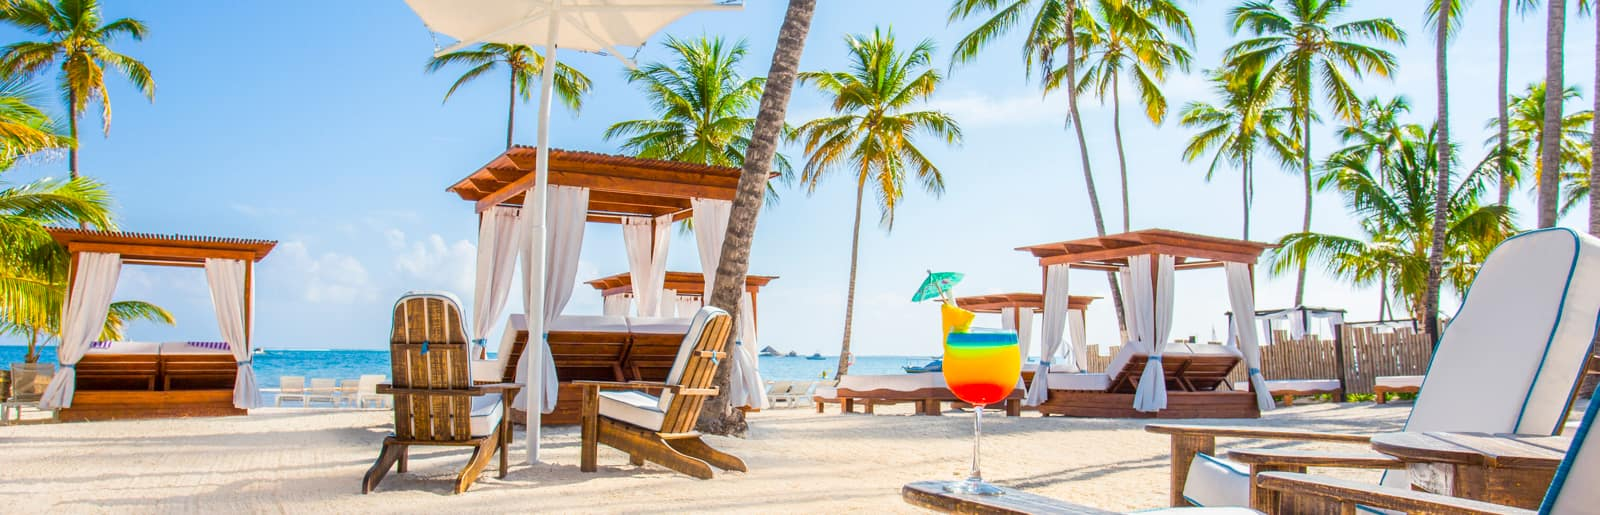 casino be live collection punta cana